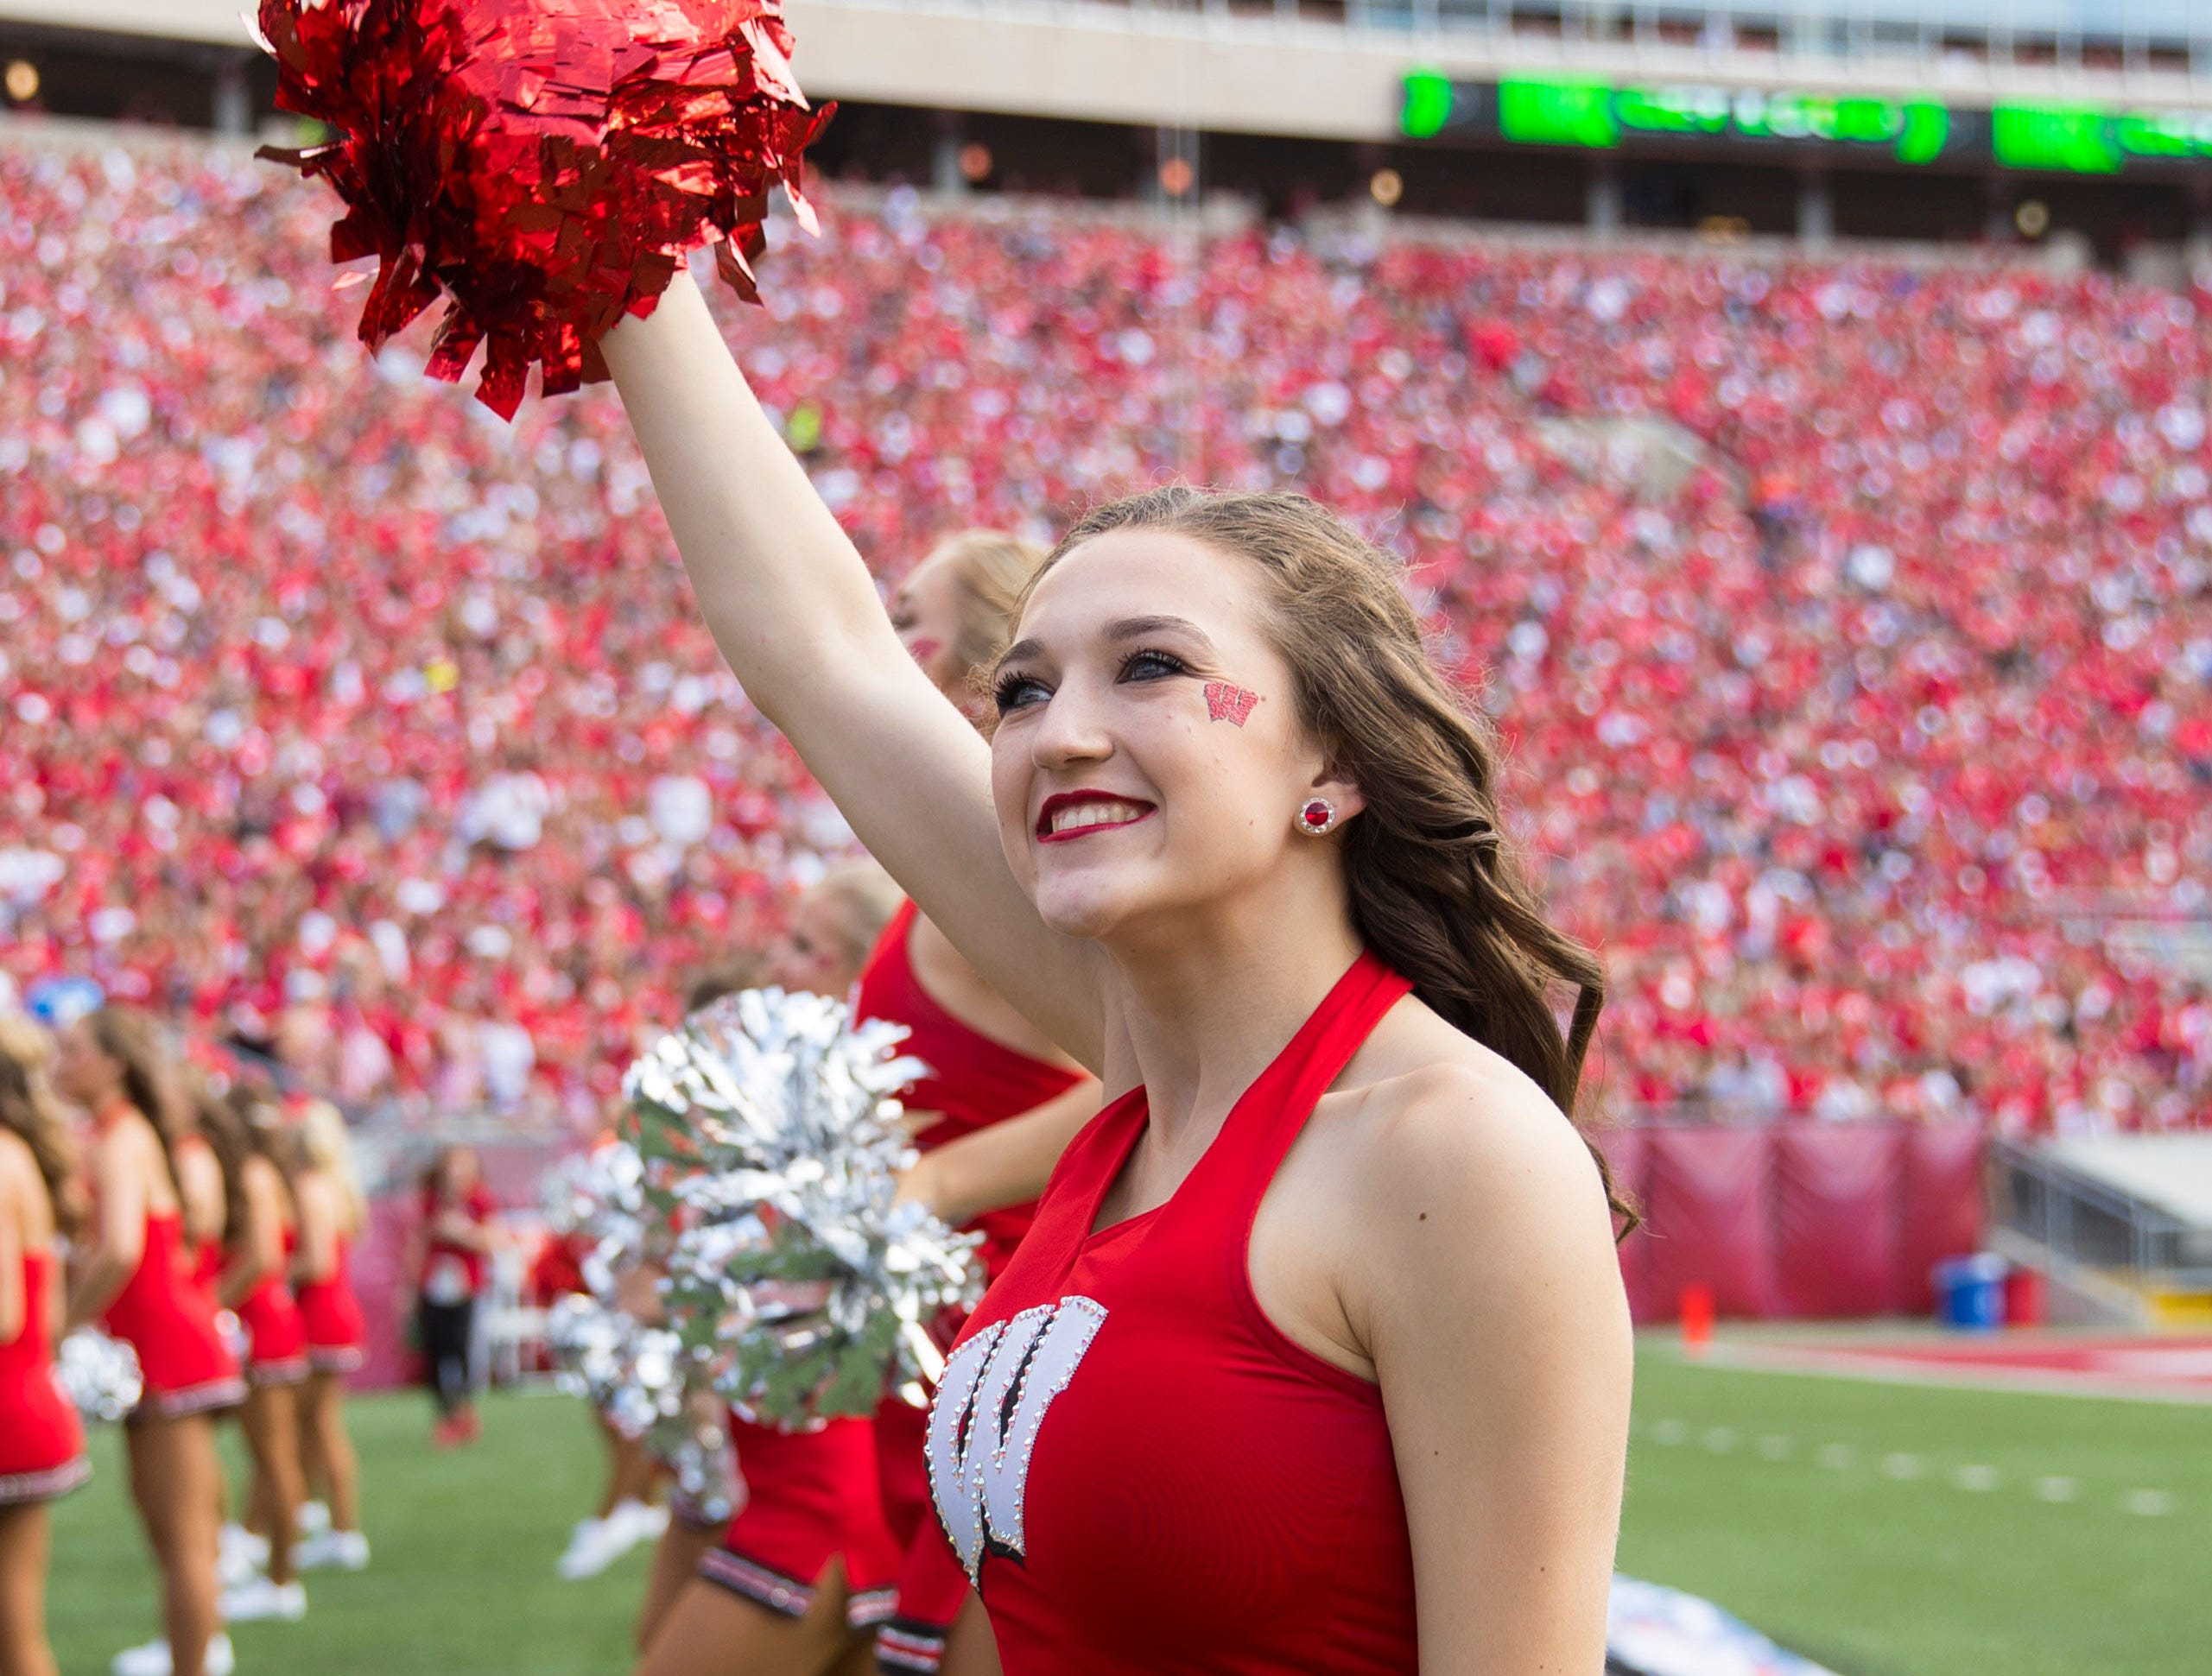 Week 2: Wisconsin Badgers cheerleaders perform during the third quarter against the New Mexico Lobos at Camp Randall Stadium.